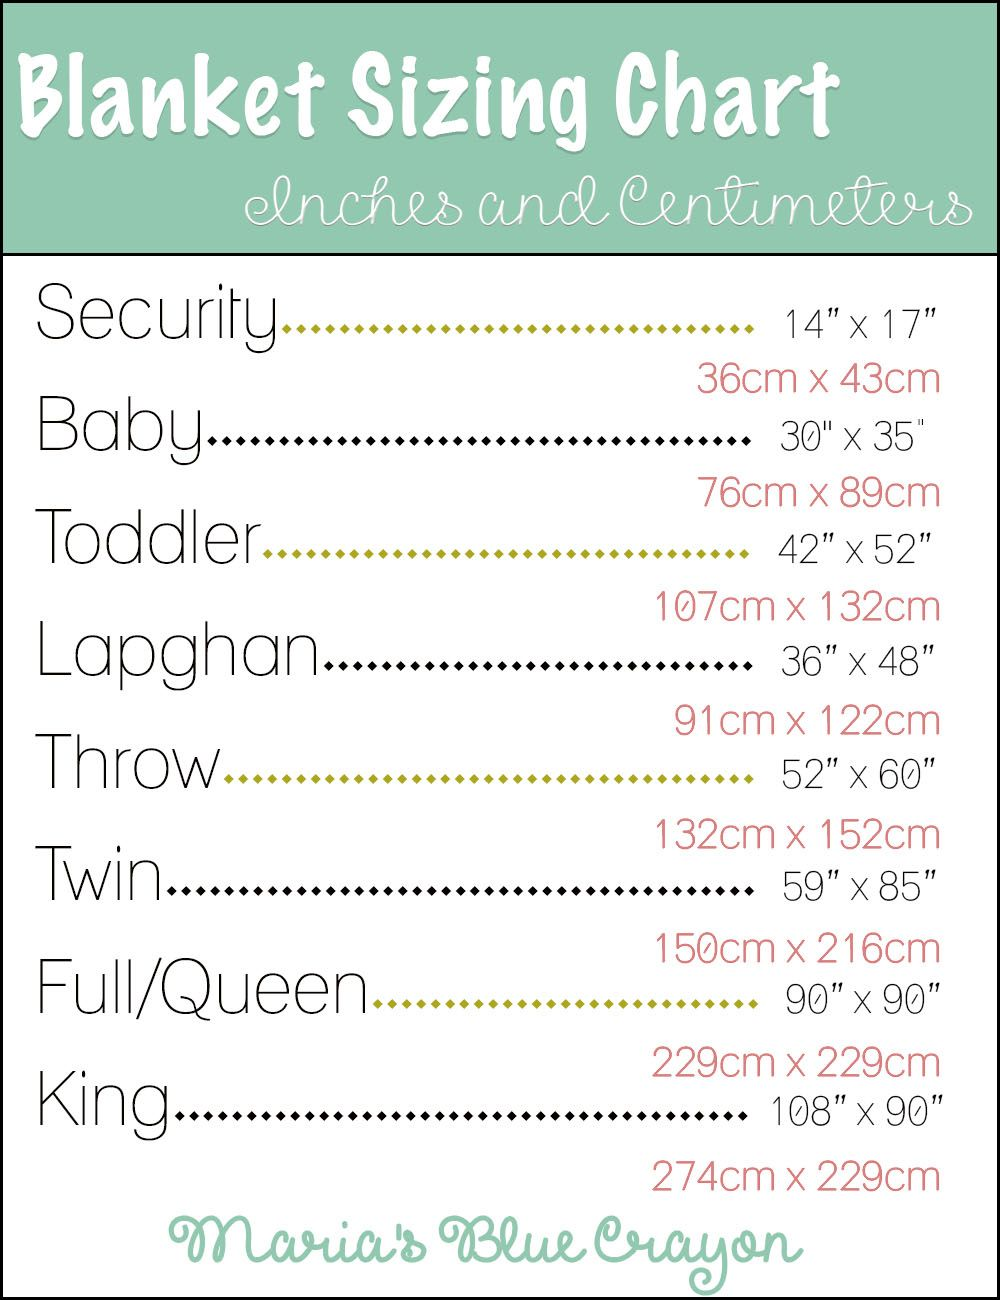 small resolution of blanket sizing in inches and centimeters chart to help guide you in sizing your blanket knit crochet etc